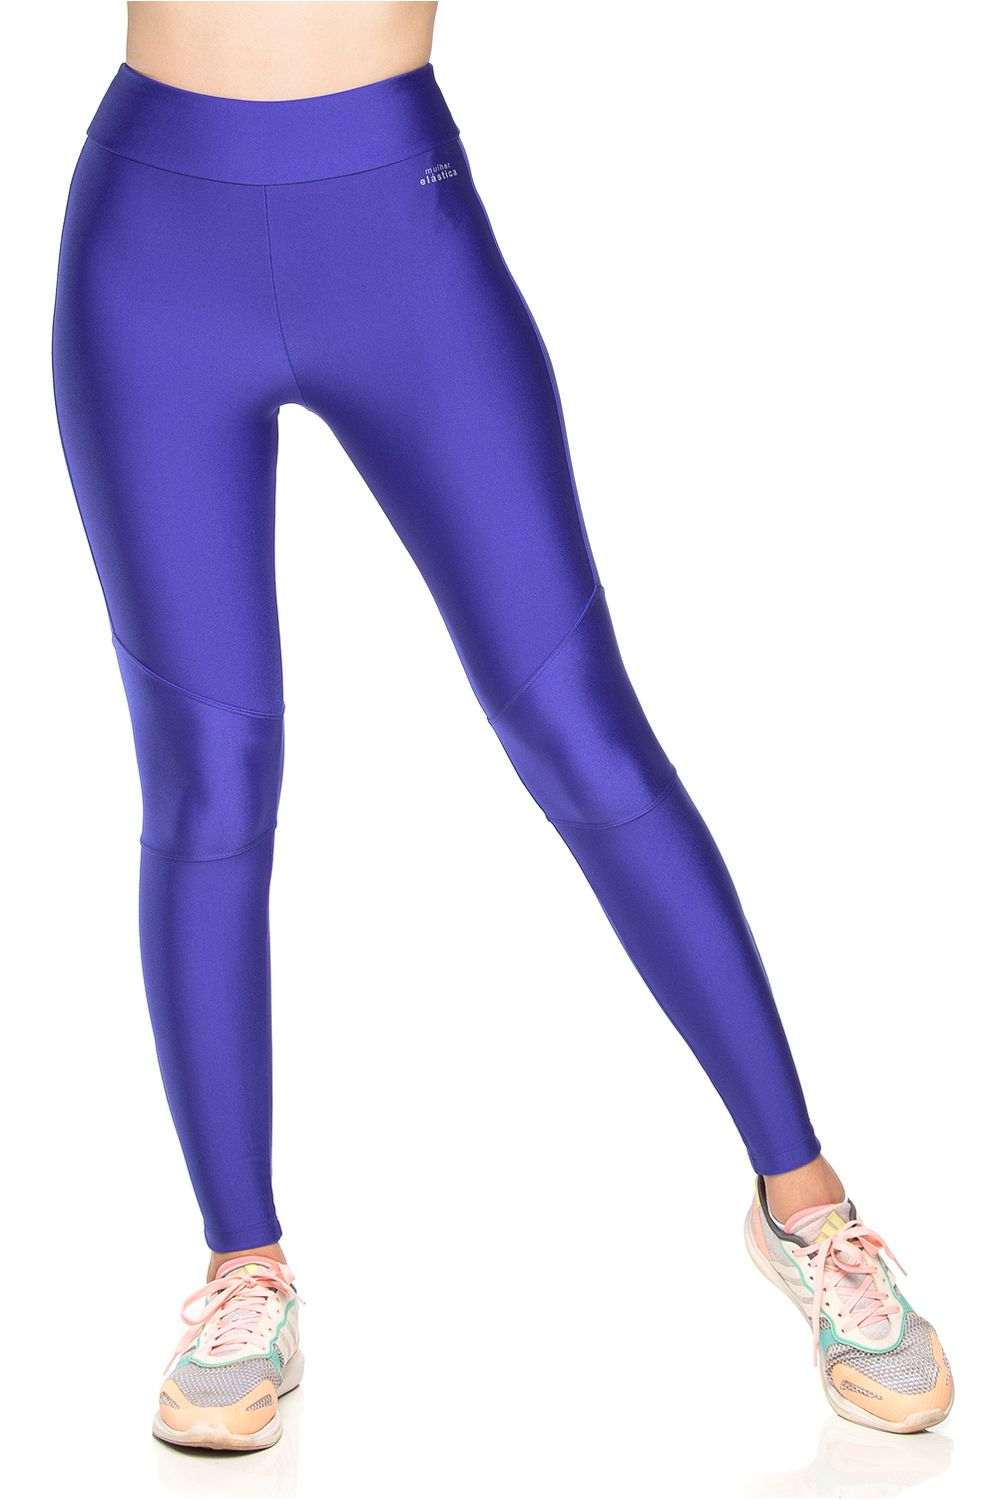 legging-fitness-alta-compressao-atlanta-tnz-6-